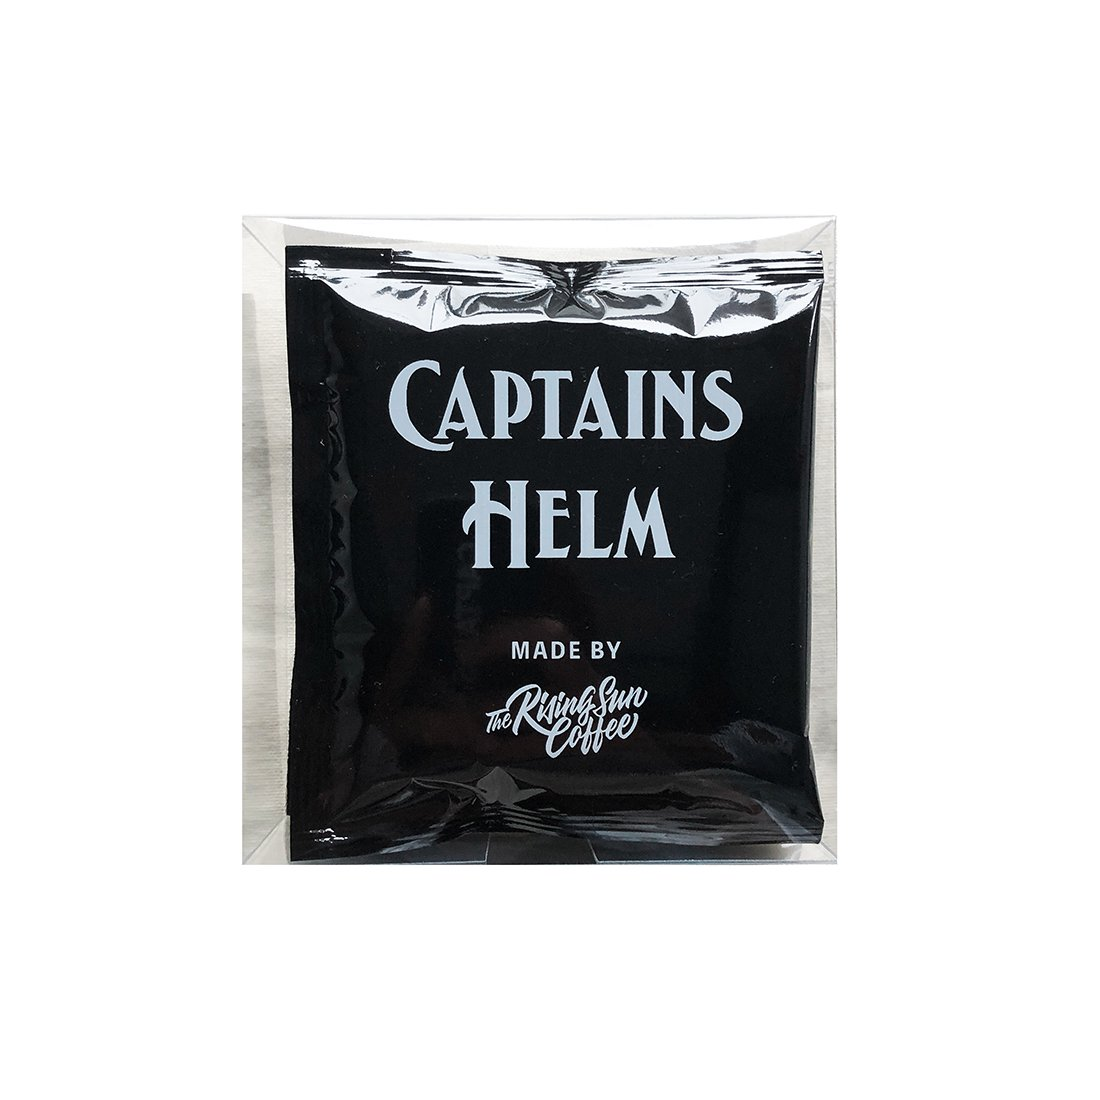 THE RISING SUN COFFEE × CAPTAINS HELM    #ORIGINAL DRIP PACK -HELMS BLEND-